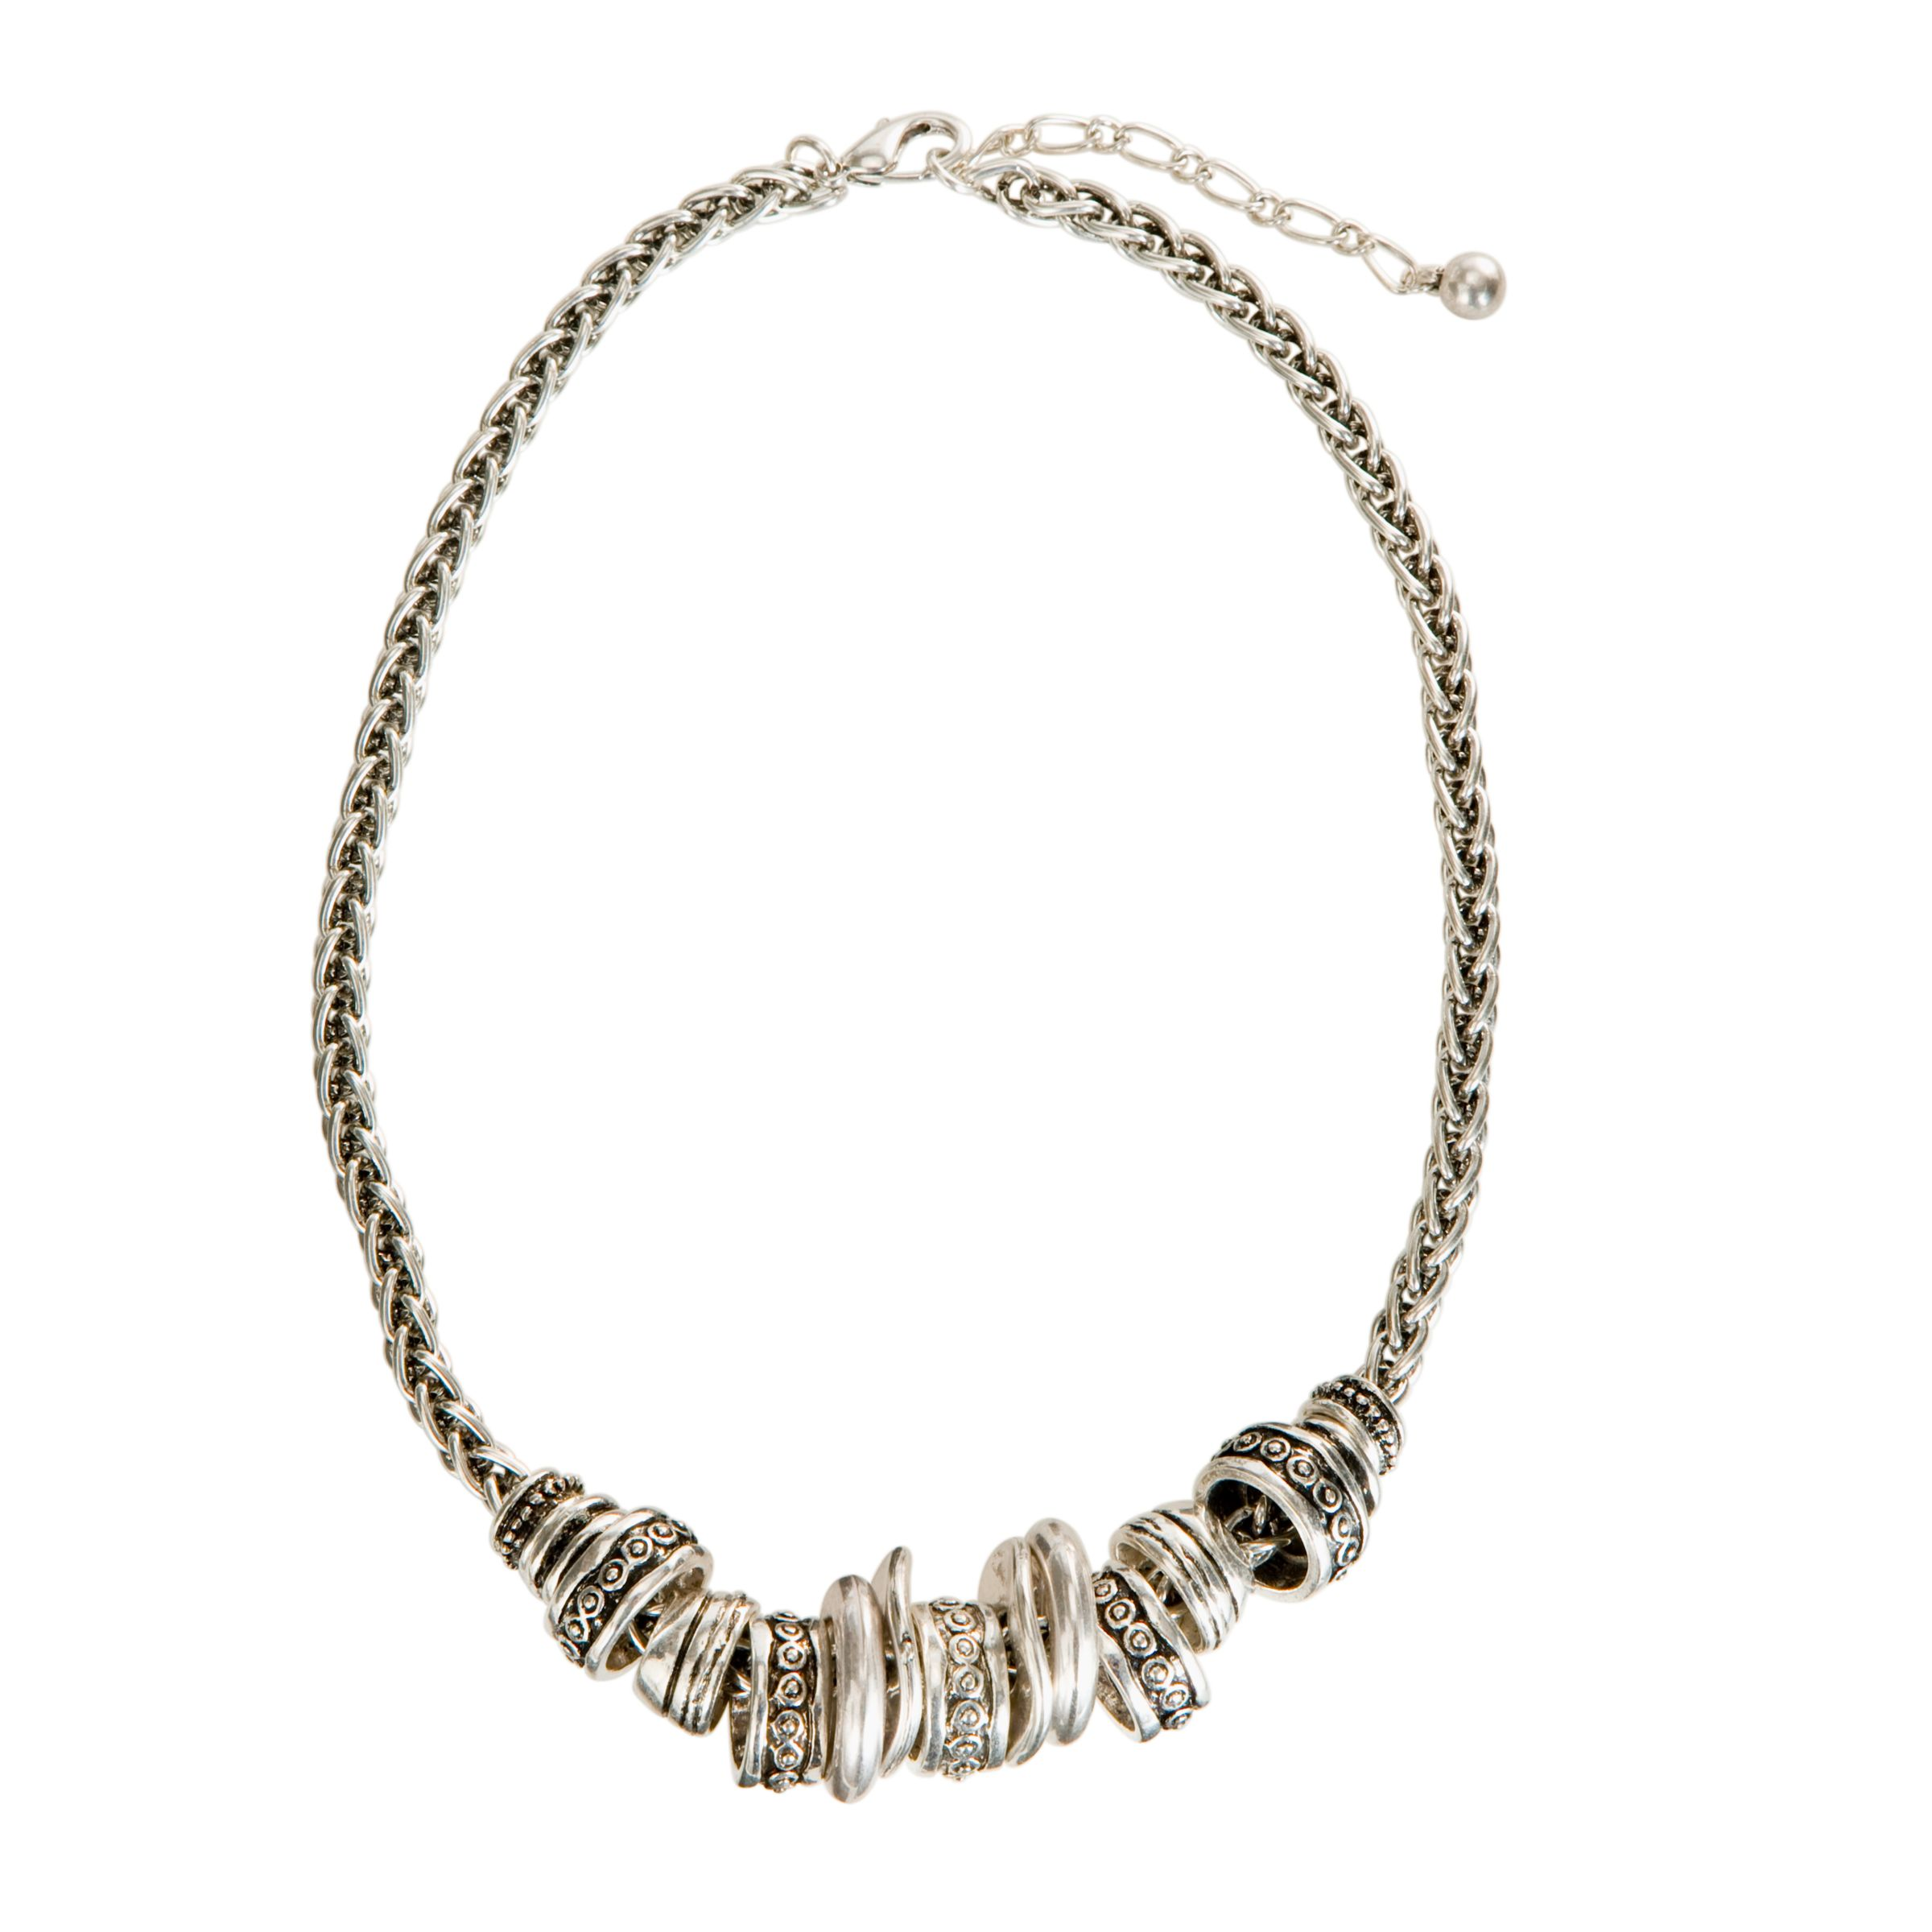 John Lewis Nordic Assorted Hoops Necklace, Silver